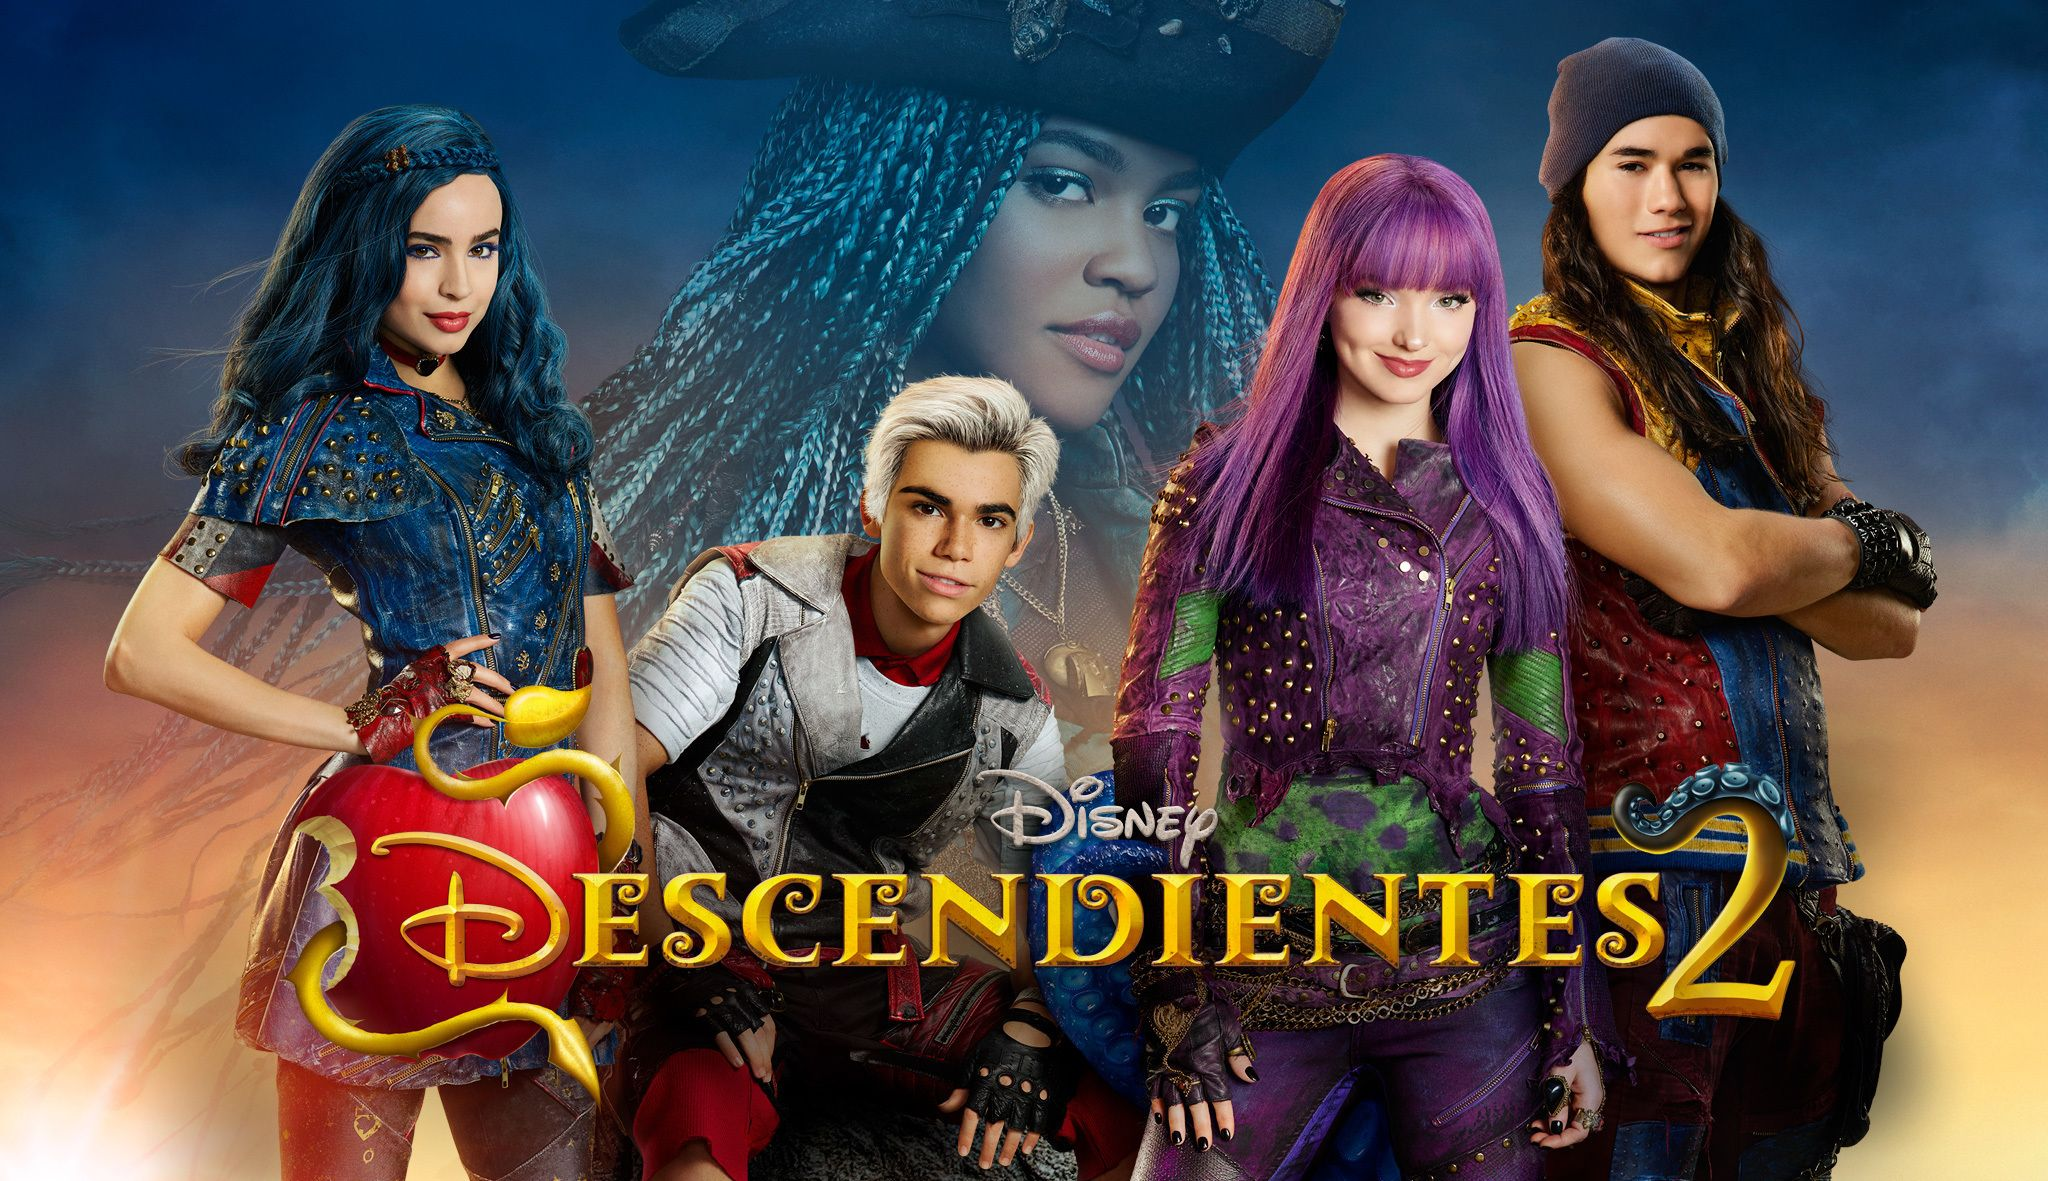 Dibujos Para Colorear De Los Descendientes Disney: Disney Channel Latinoamérica